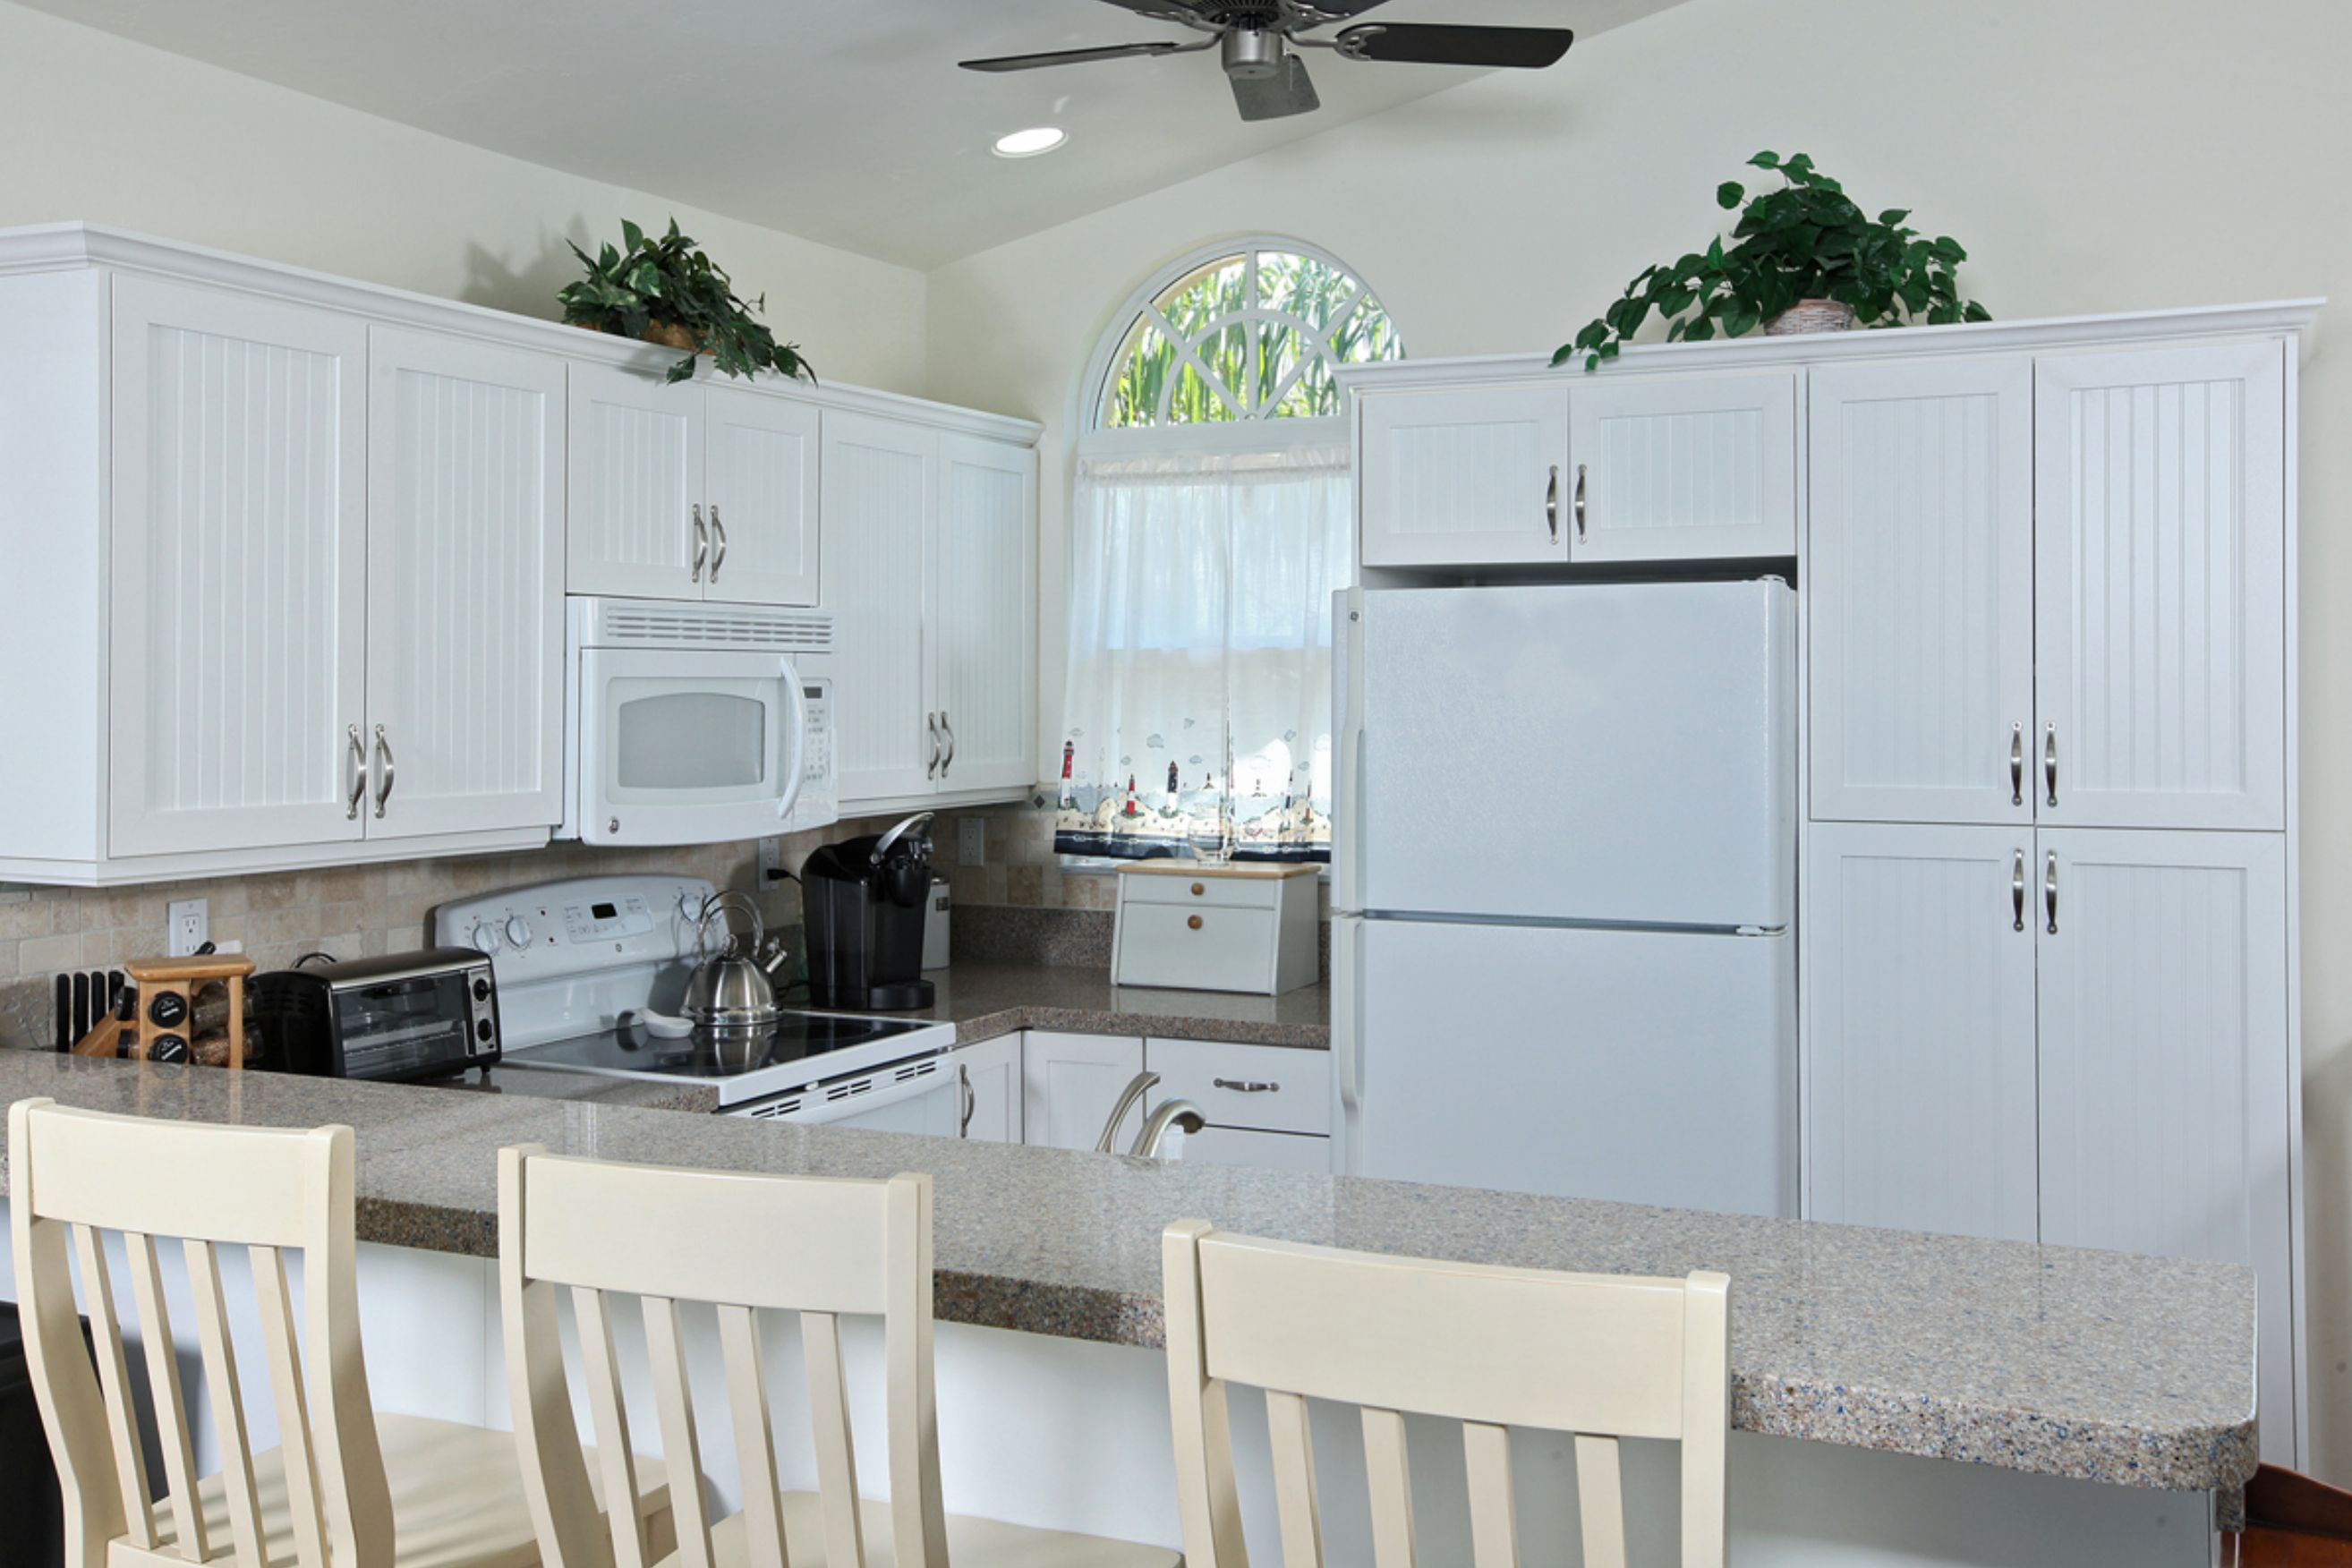 Newly Remodeled Kitchen With Quartz Countertops.